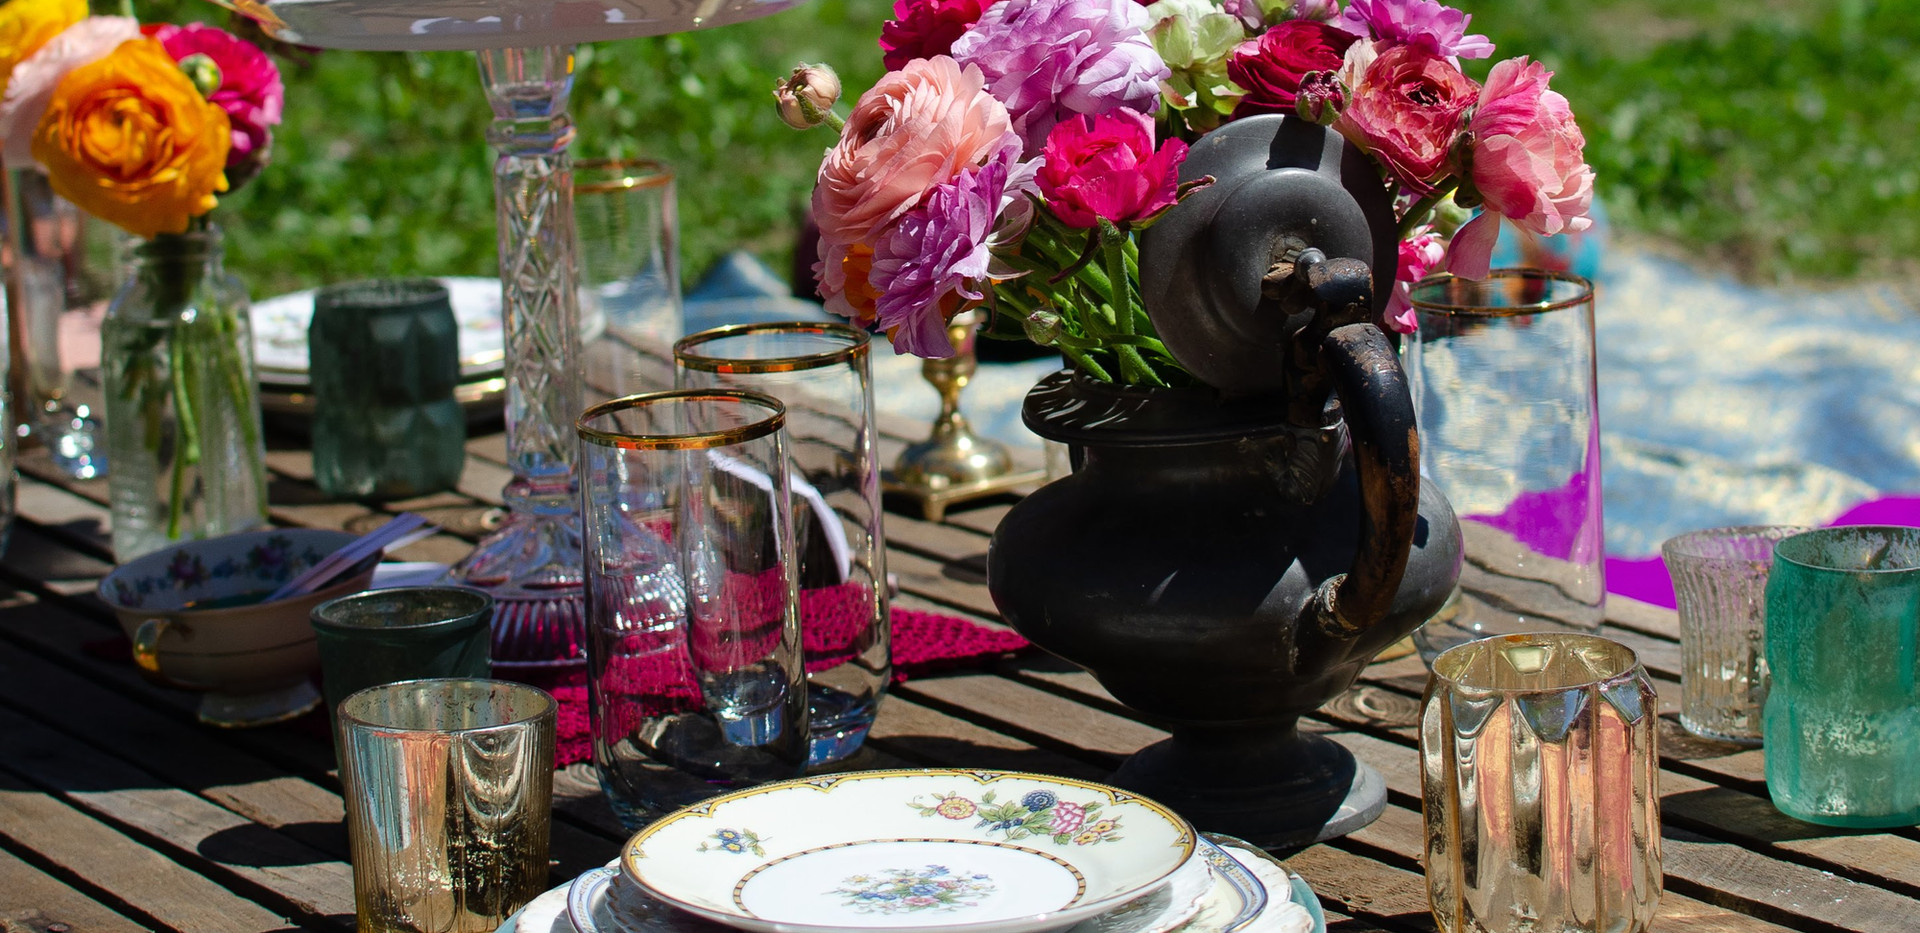 Event Decor and Florals